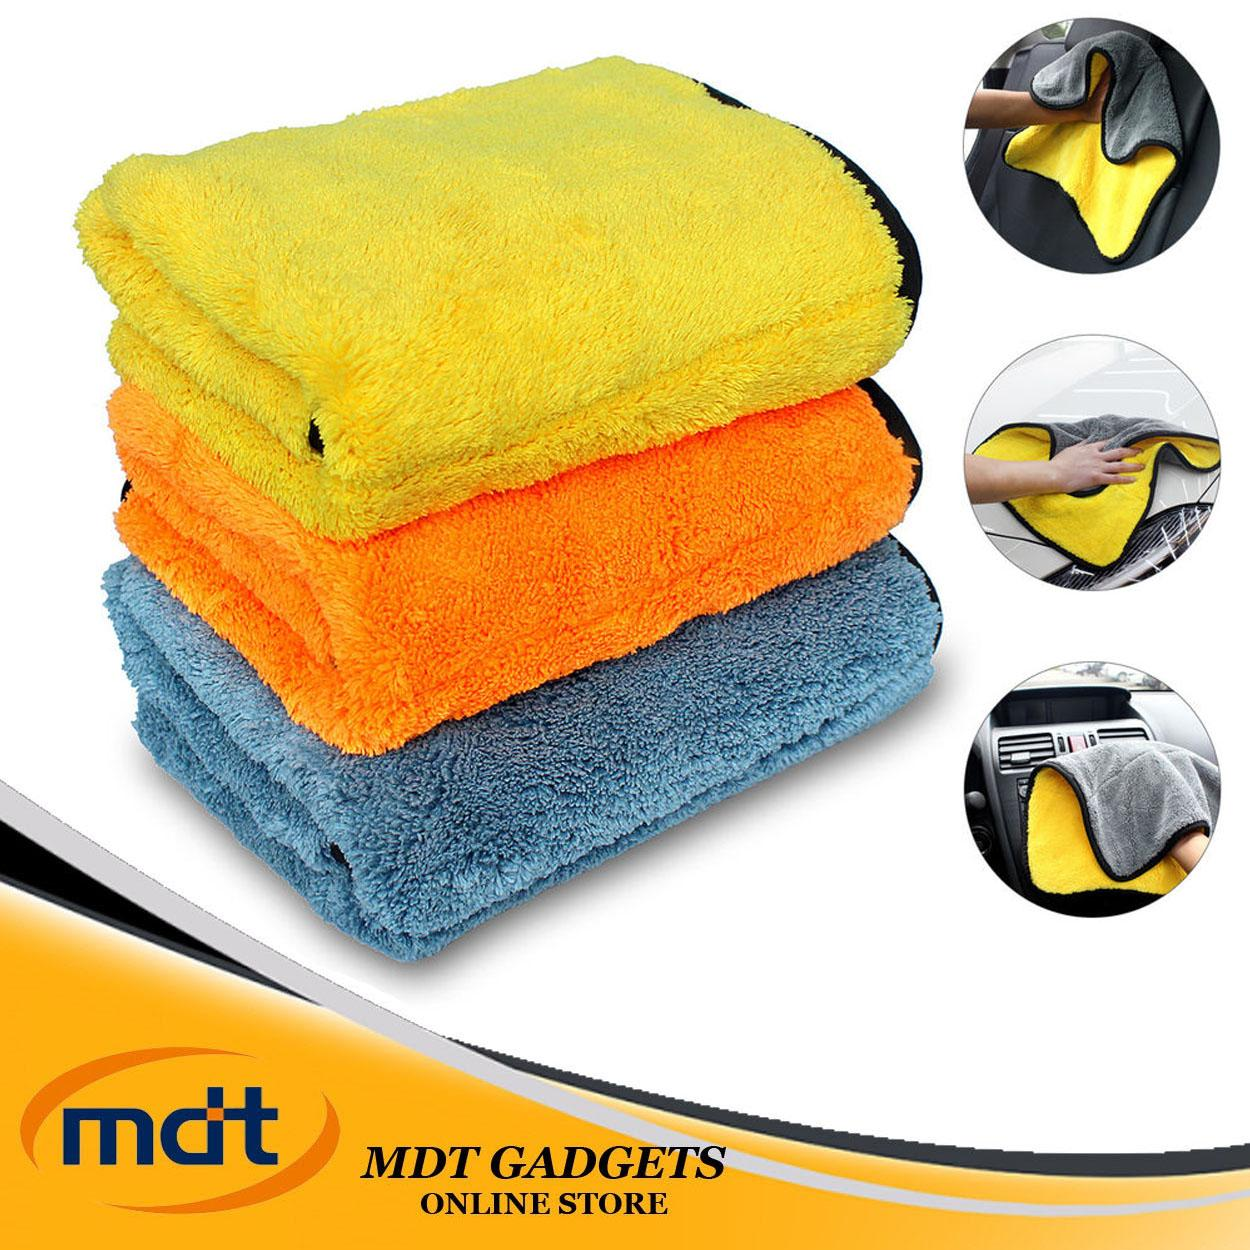 Super Absorbent Car Wash Towel Cleaning Drying Towel (Multicolor) image on snachetto.com